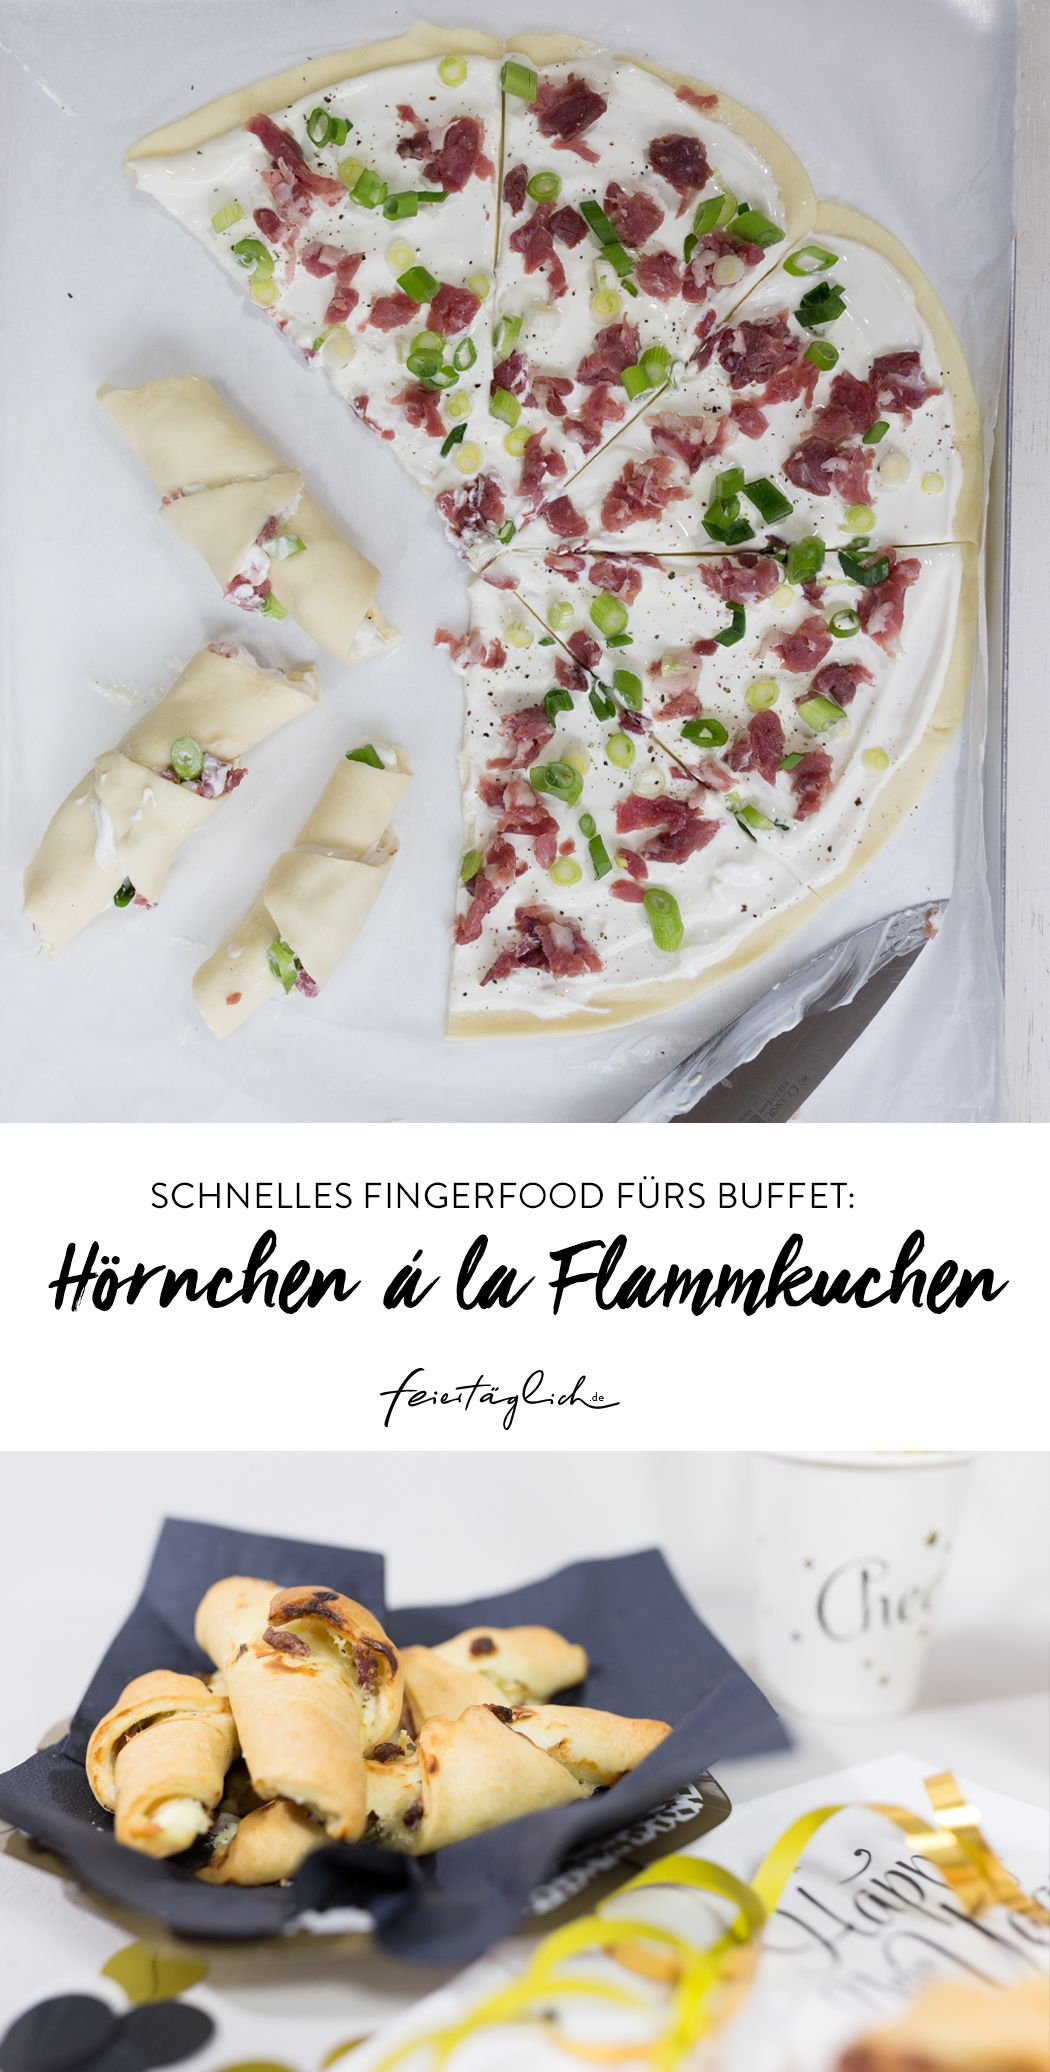 schnelles fingerfood f rs buffet h rnchen la flammkuchen happymottoparty sylvester. Black Bedroom Furniture Sets. Home Design Ideas